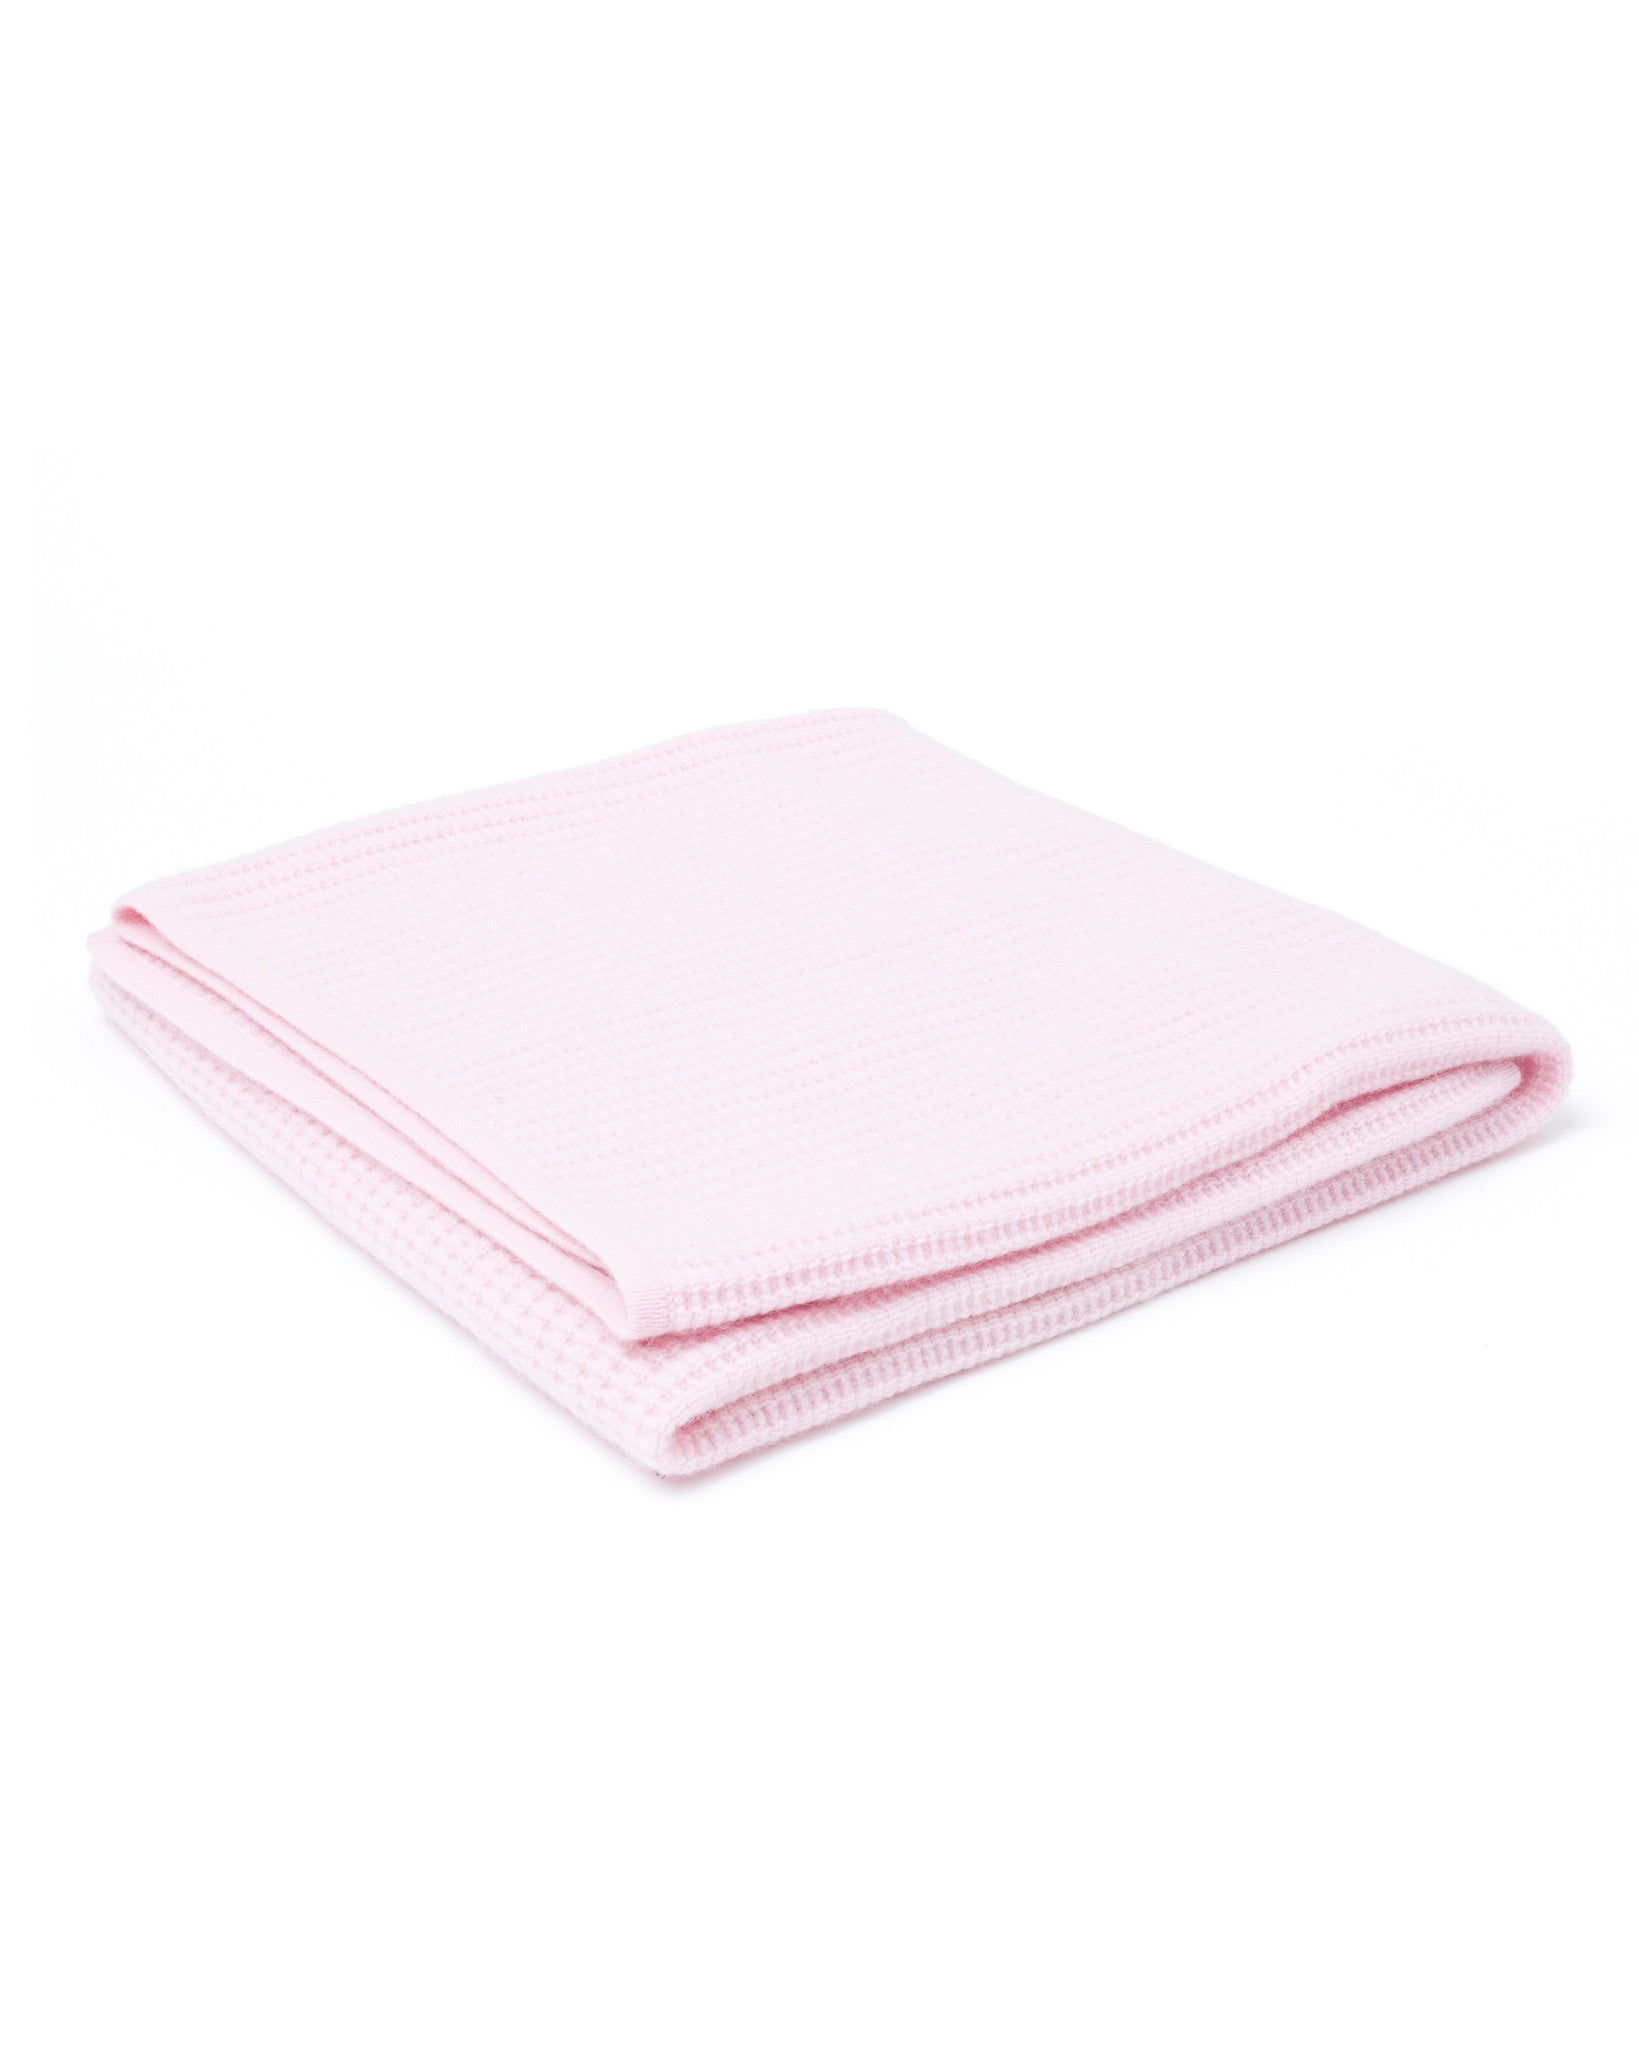 HOME - Thermal Layette Baby Blanket